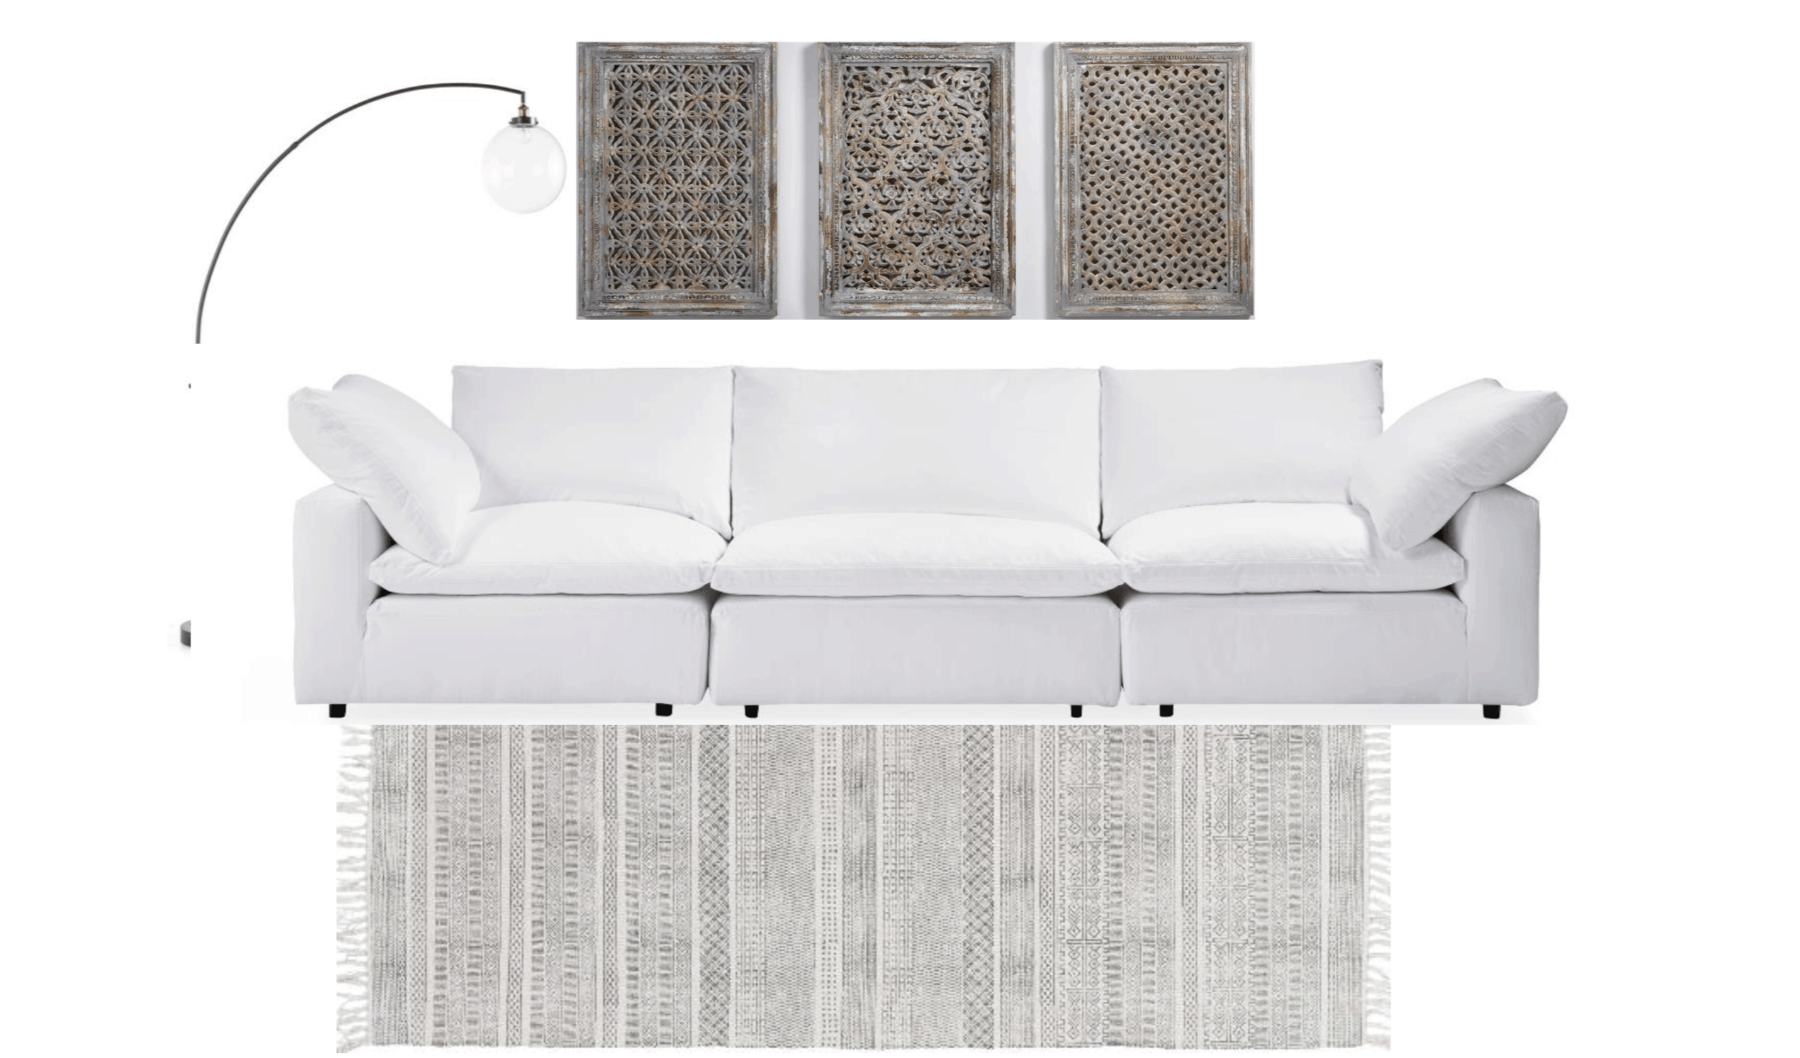 Arhaus A Match Made In Home Design Heaven City Girl